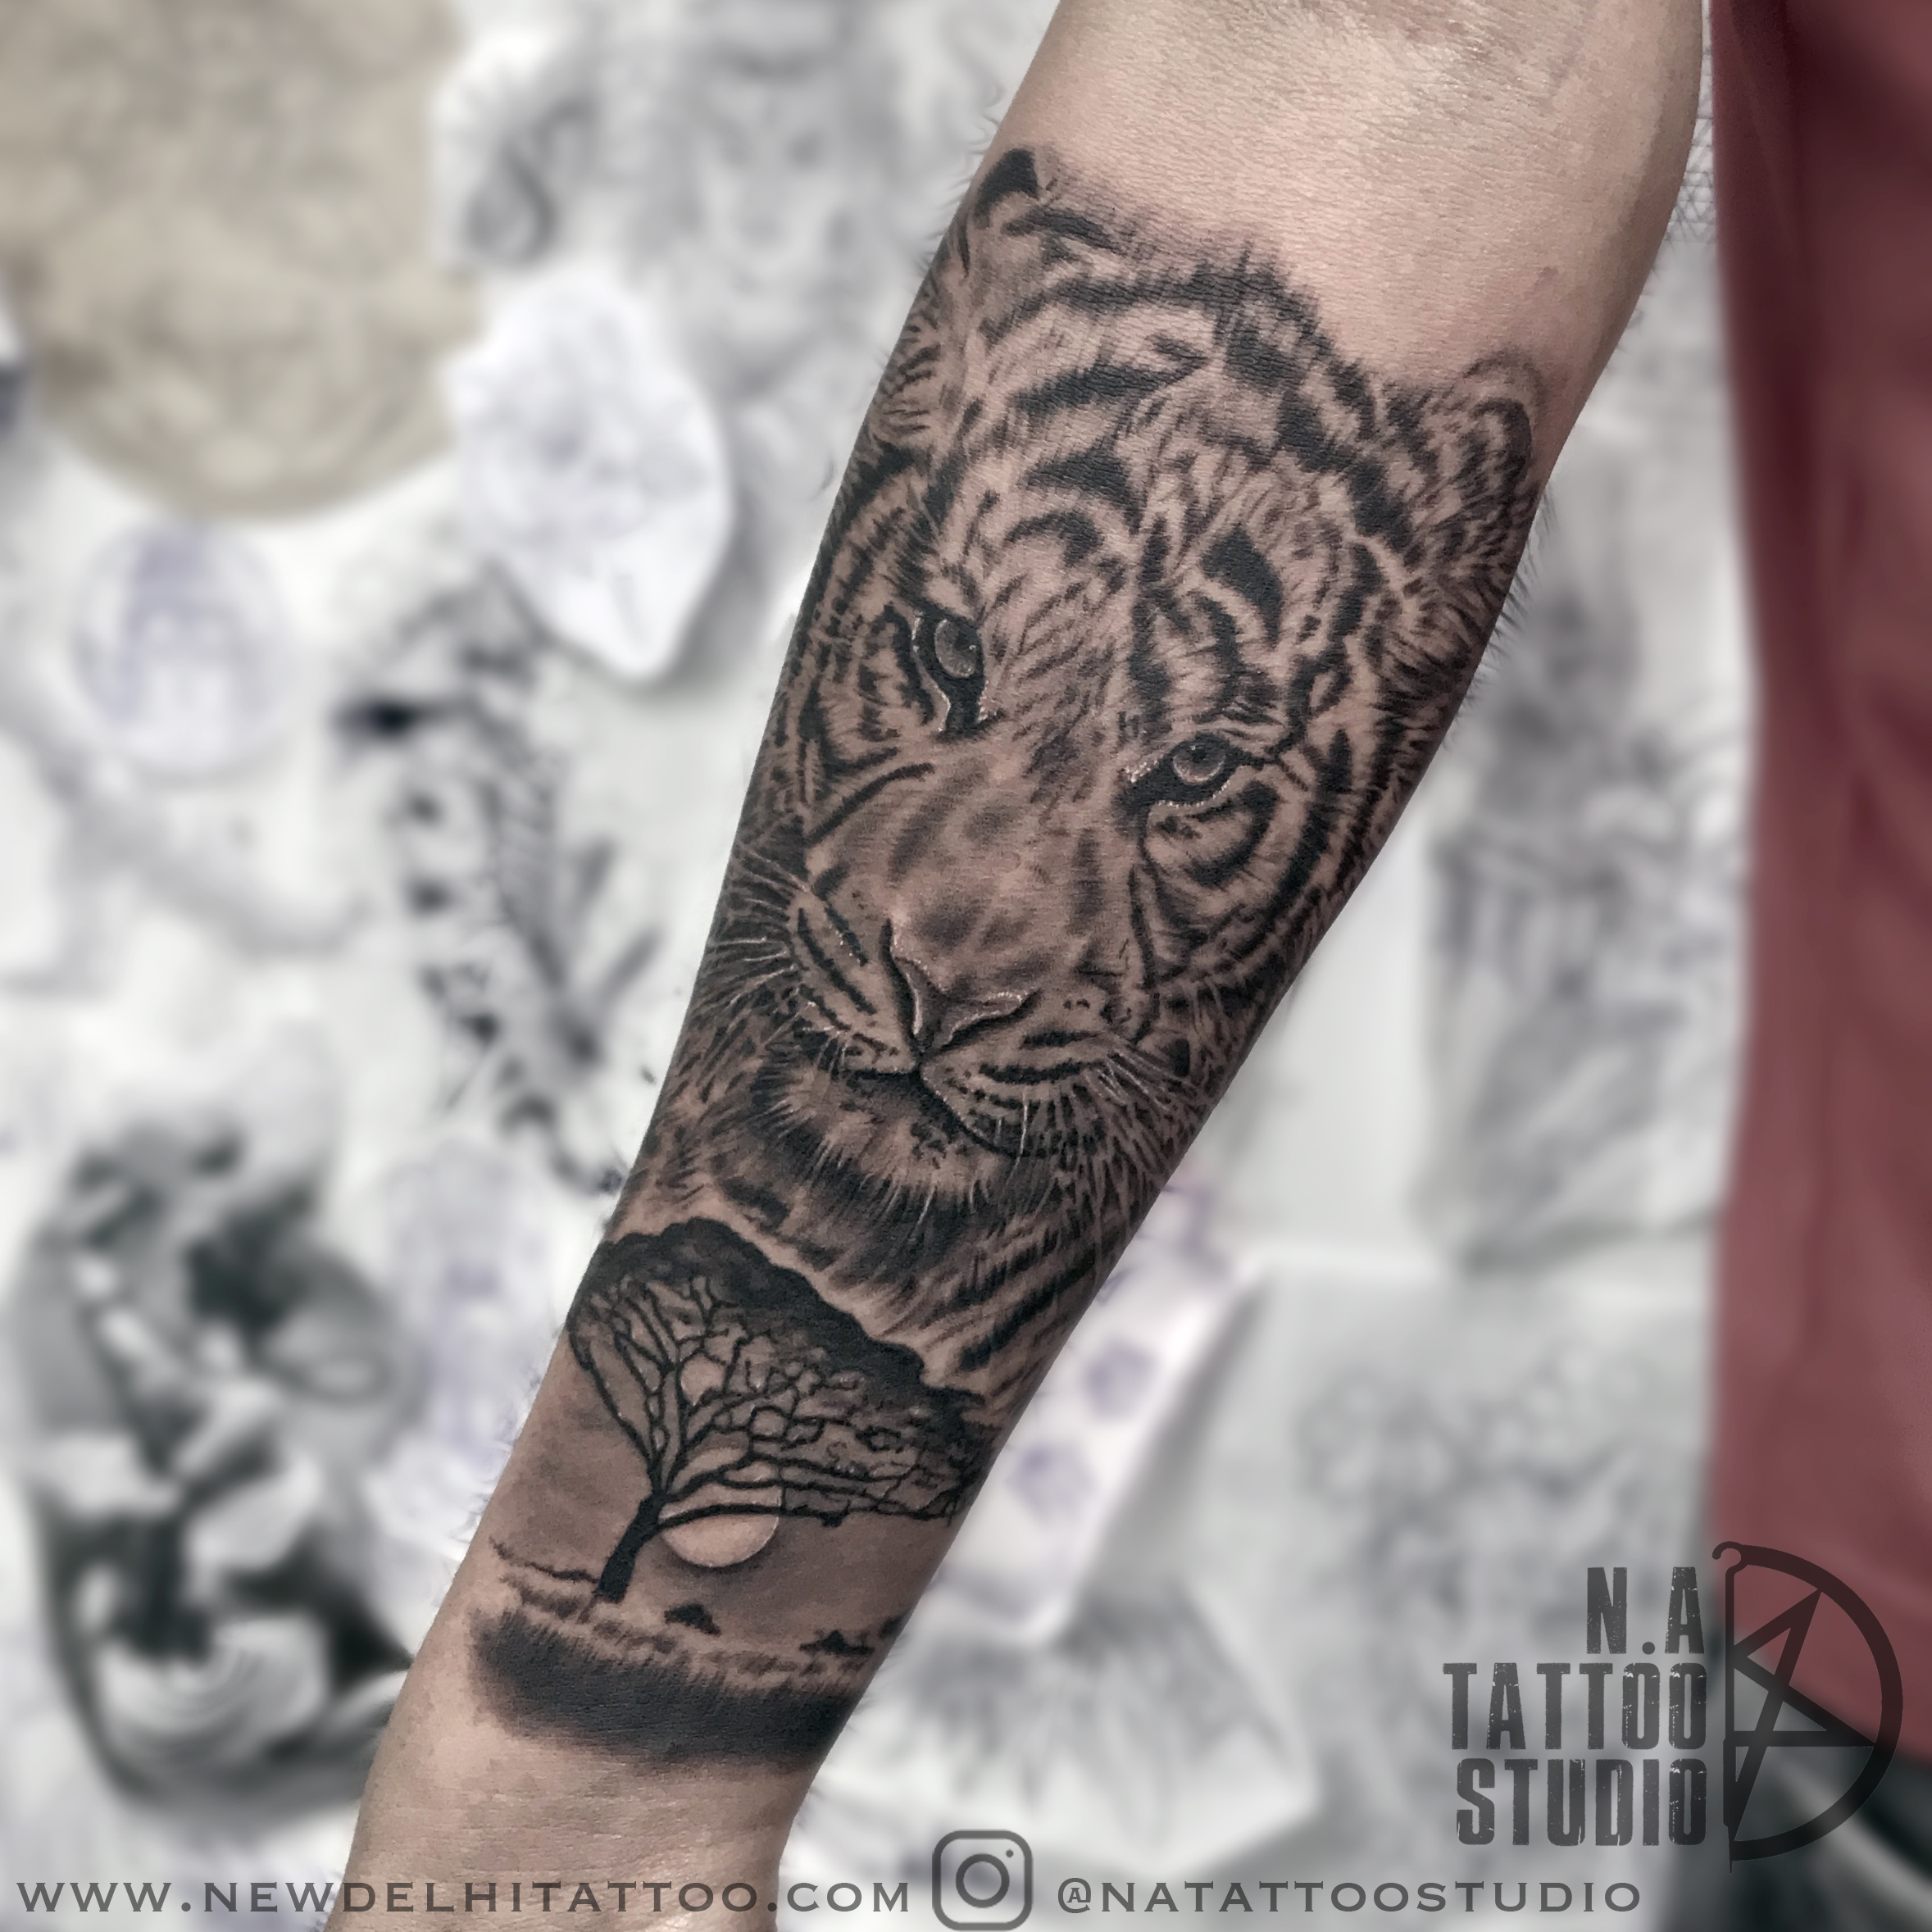 tiger-tattoo-natattoostudio